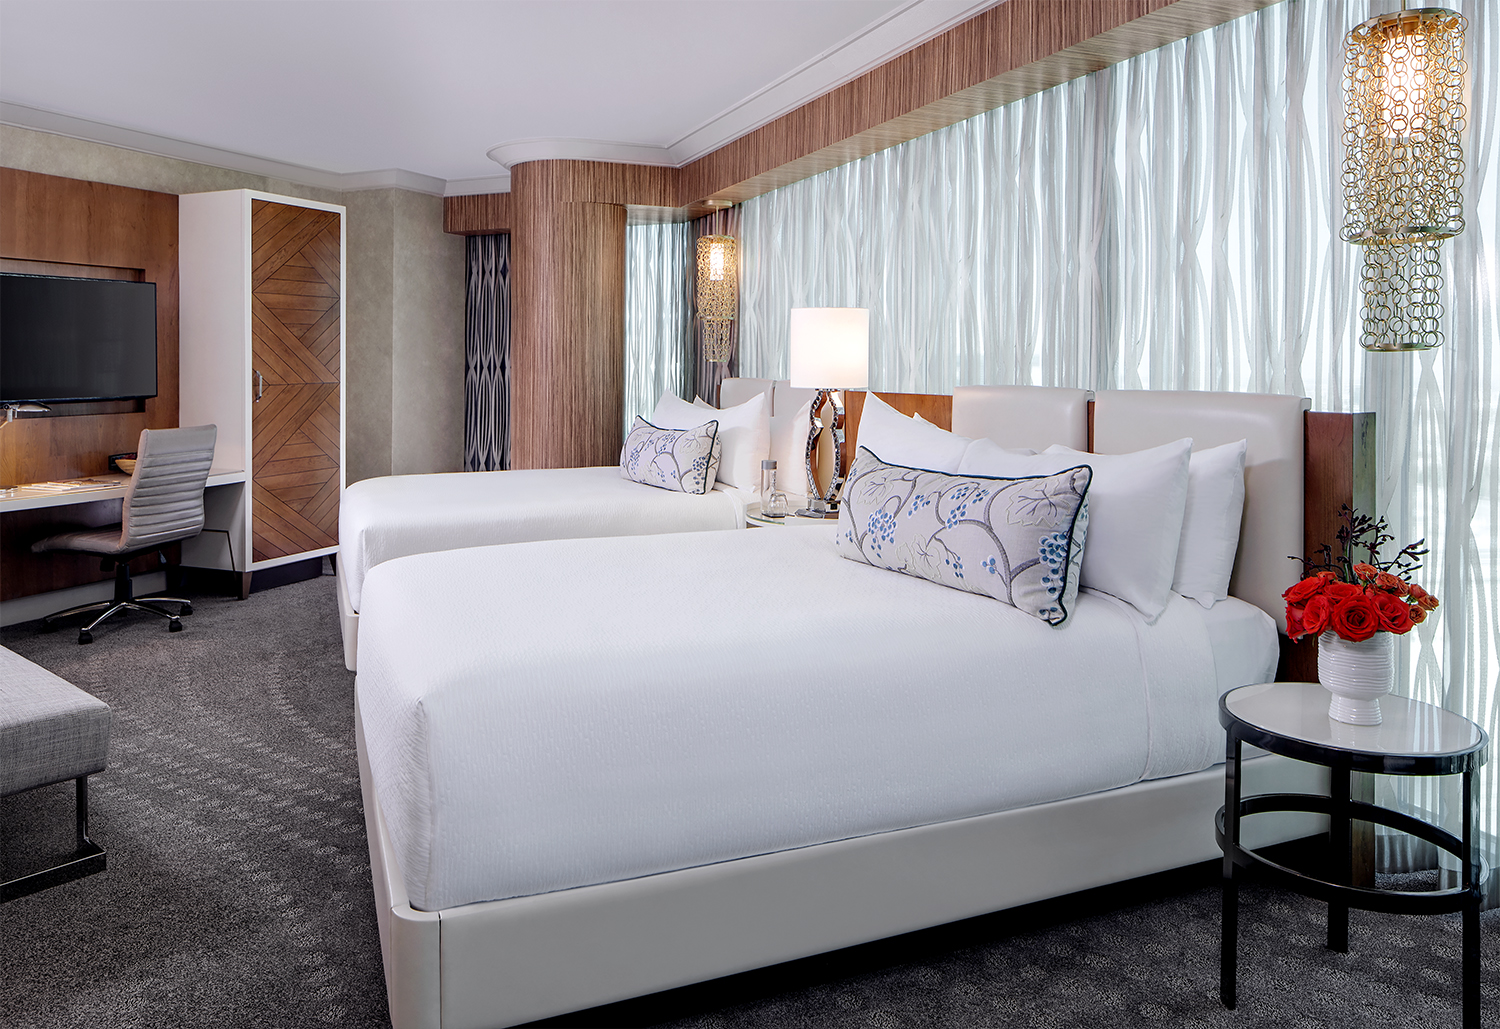 Las Vegas Hotels With 2 Bedroom Suites Mandalay Bays Remodeled Hotel Rooms Give A Beach Vibe Year Round